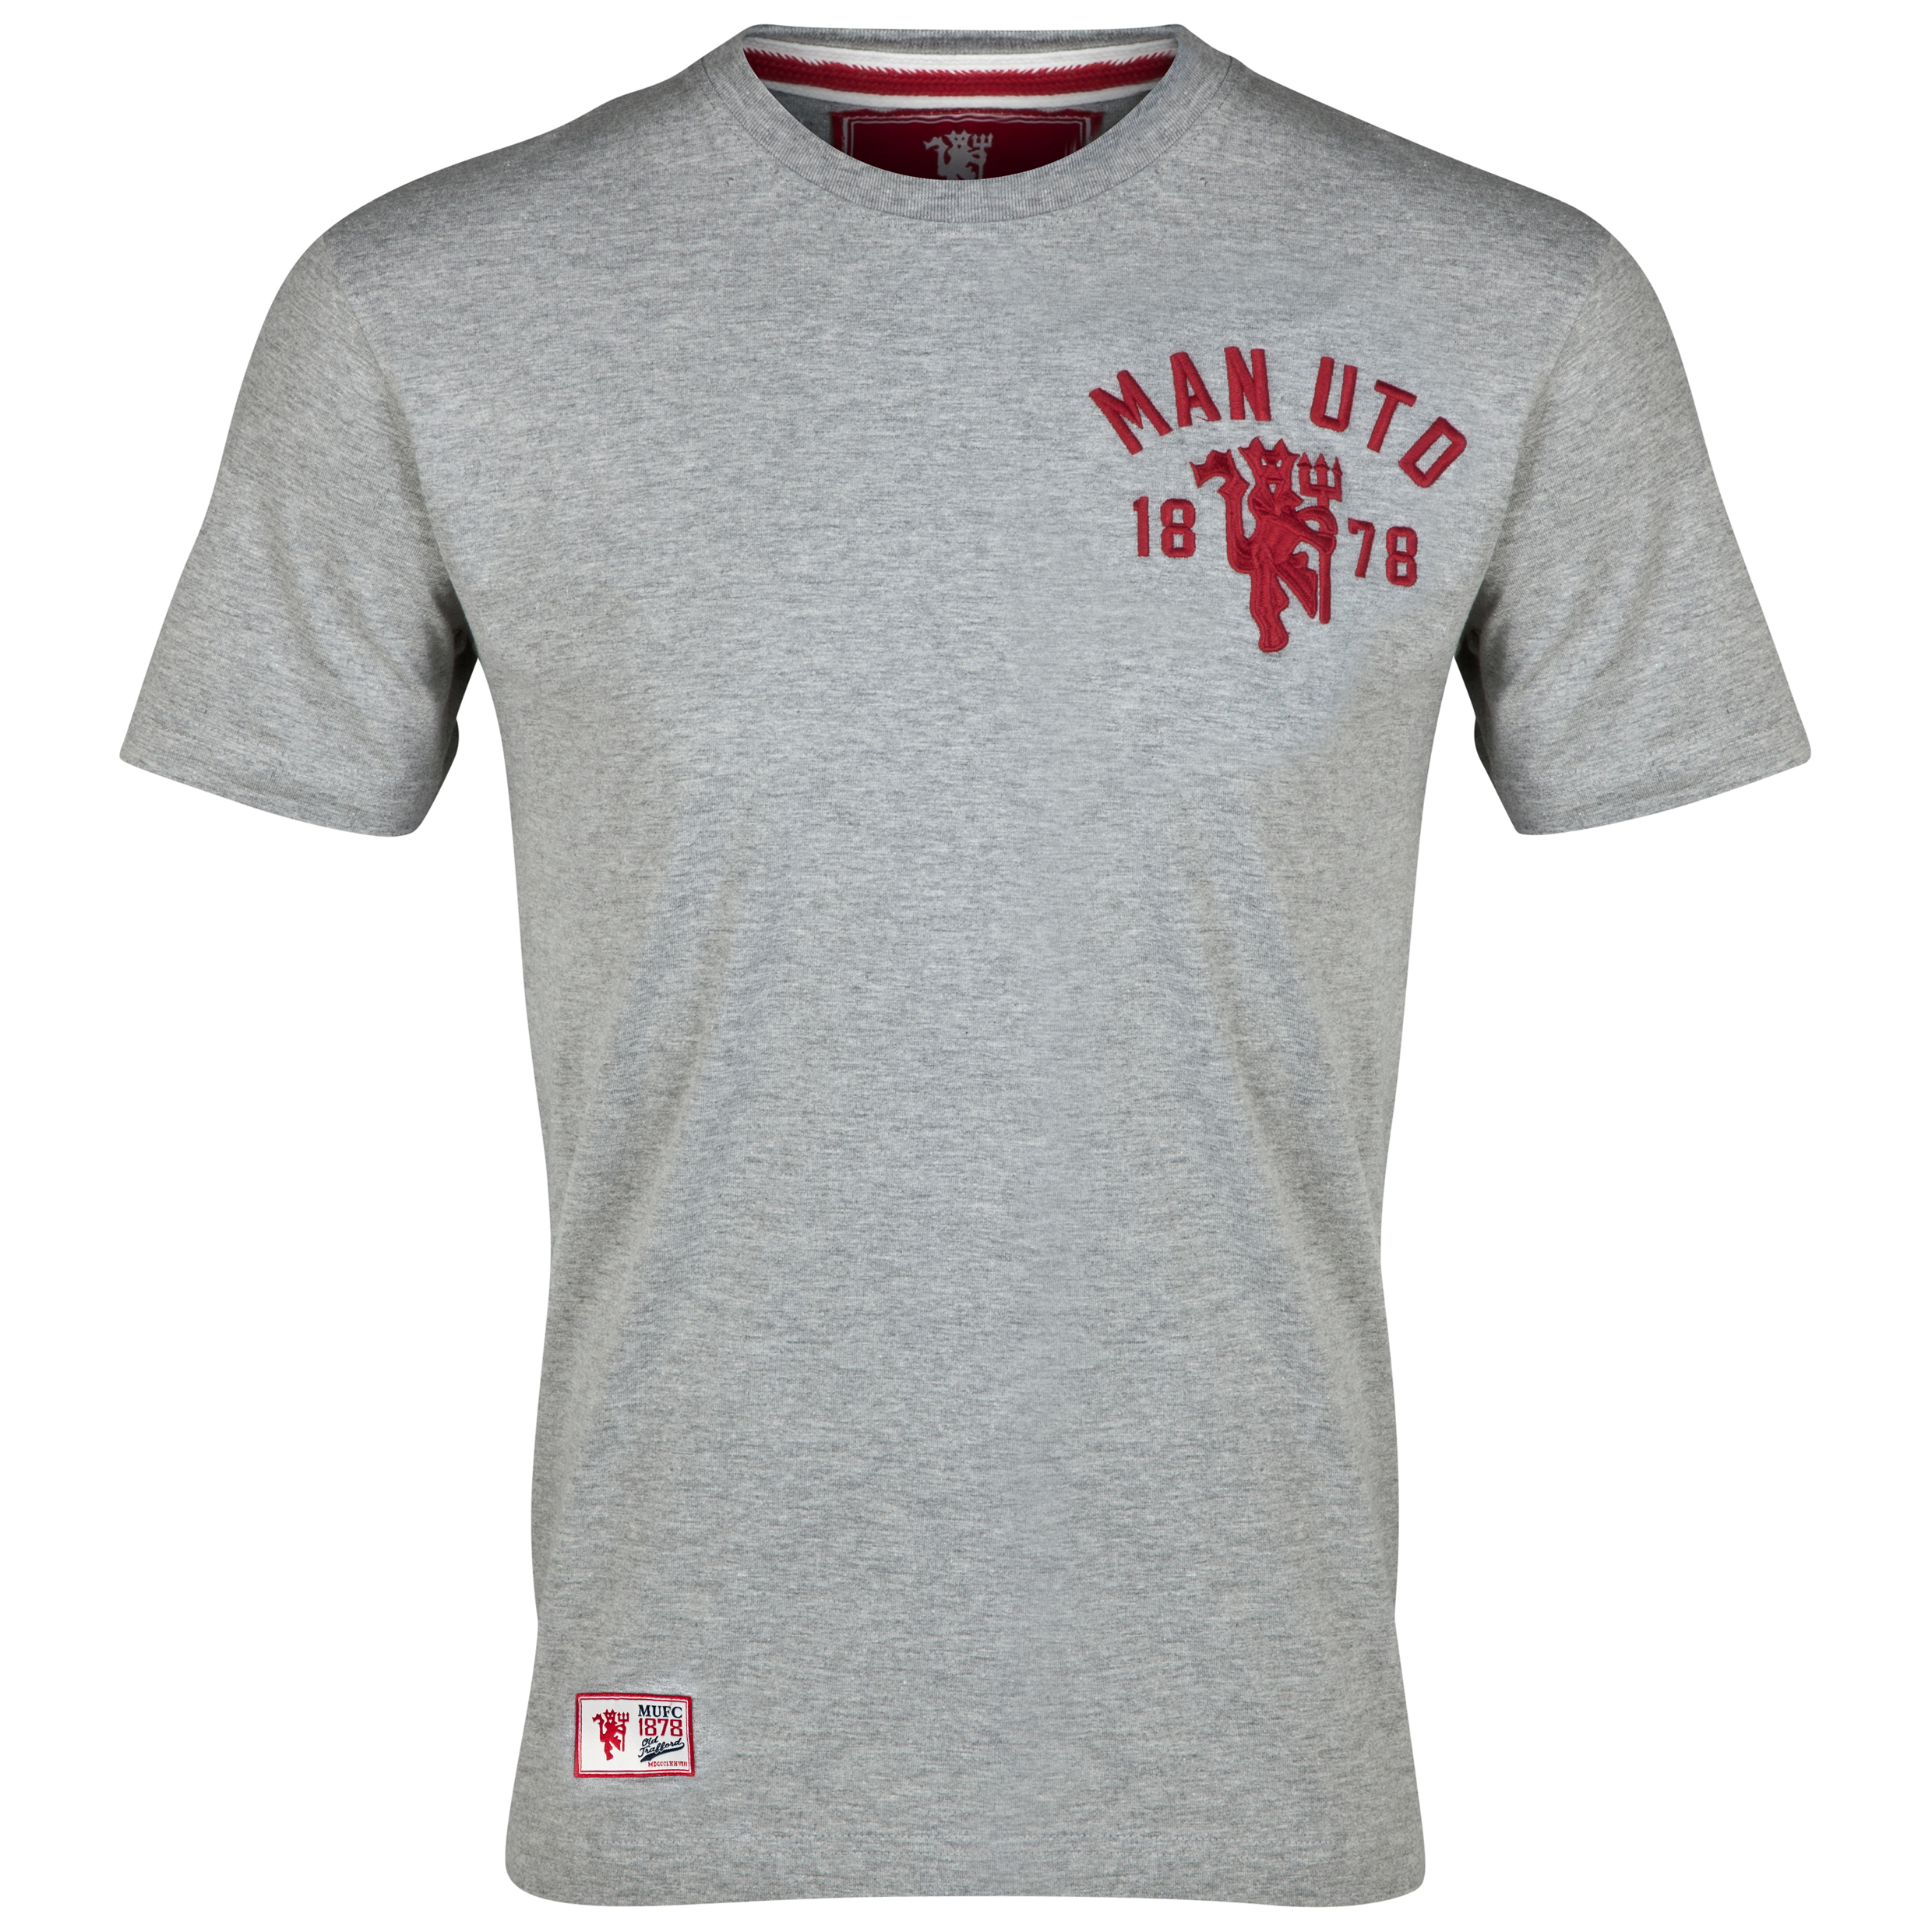 Manchester United Heritage Devil T-Shirt - Mens Grey